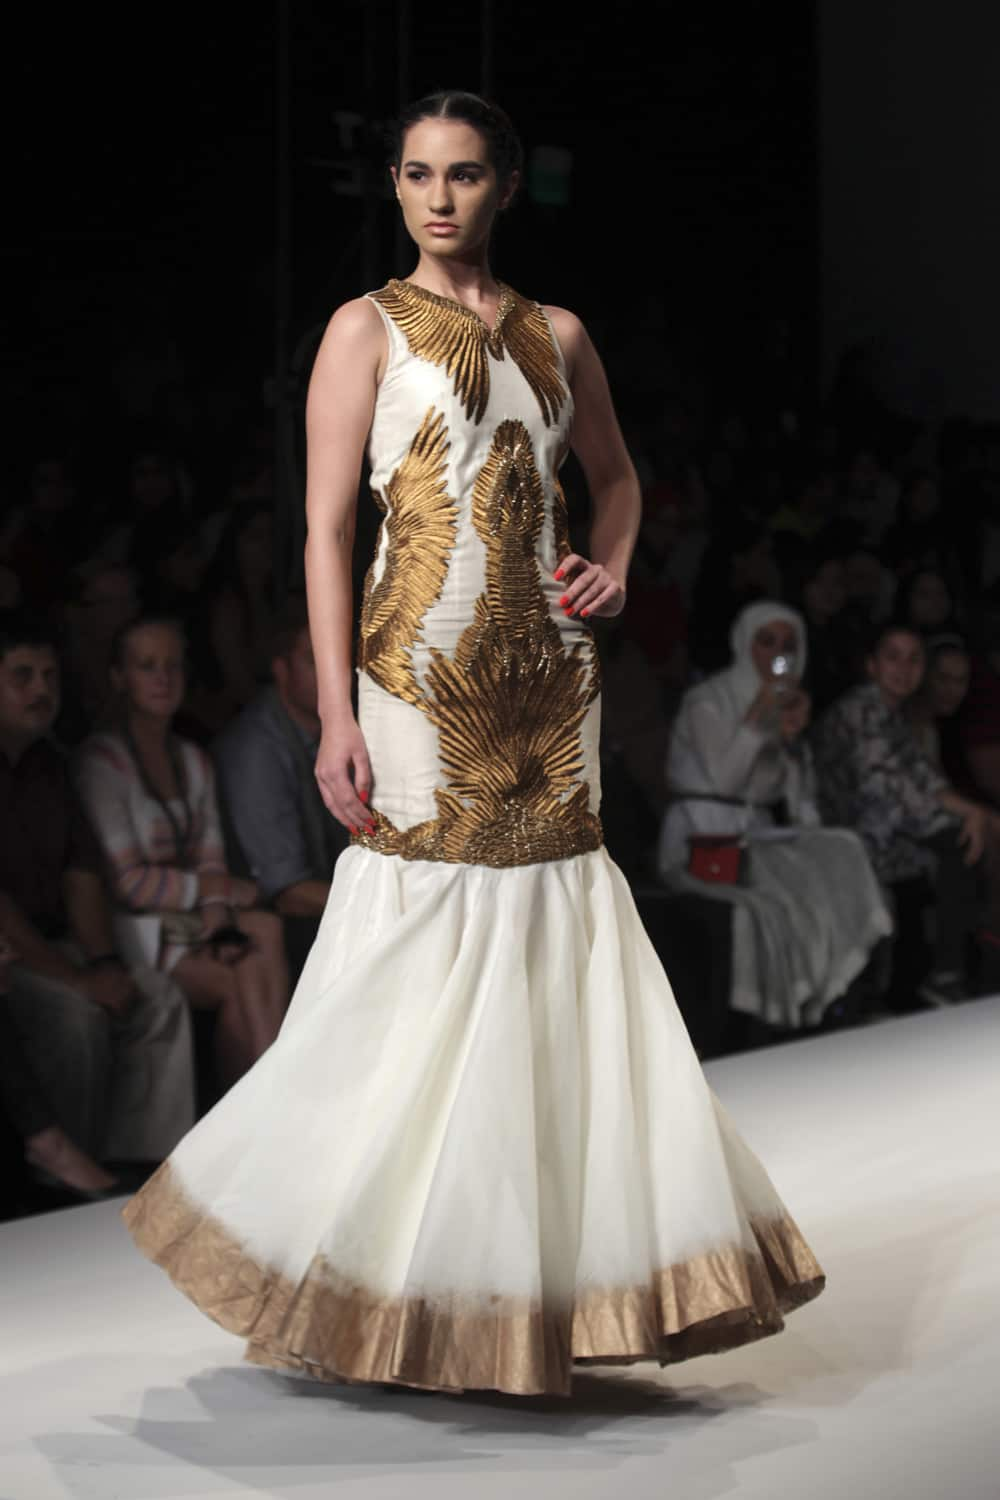 A model displays a creation by Samant Chauhan during the Wills lifestyle Fashion Week in New Delhi.